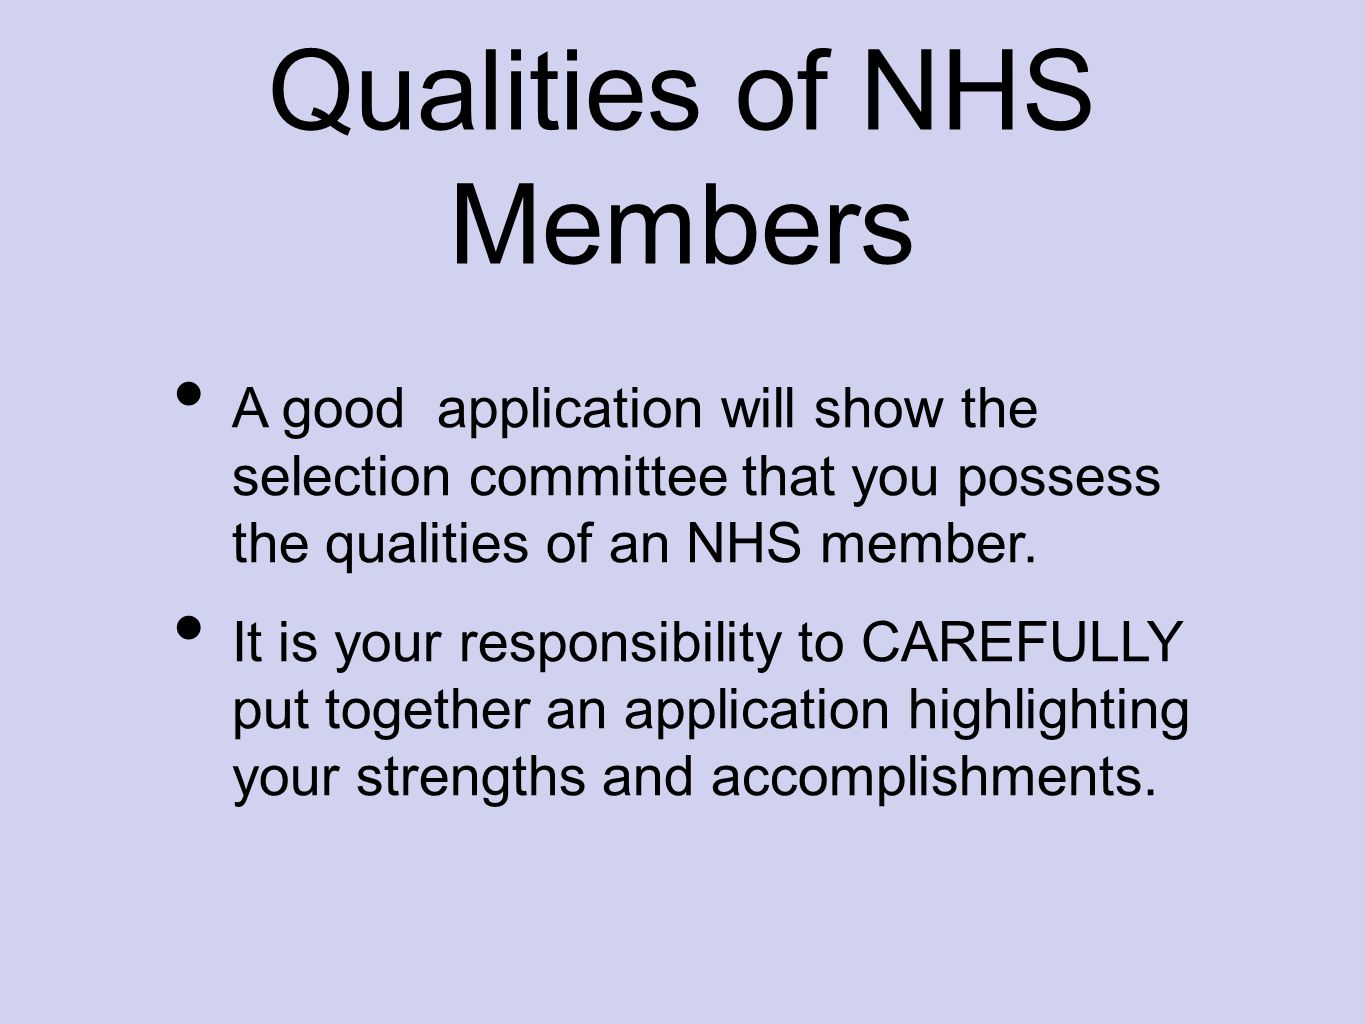 Qualities of NHS Members A good application will show the selection committee that you possess the qualities of an NHS member.